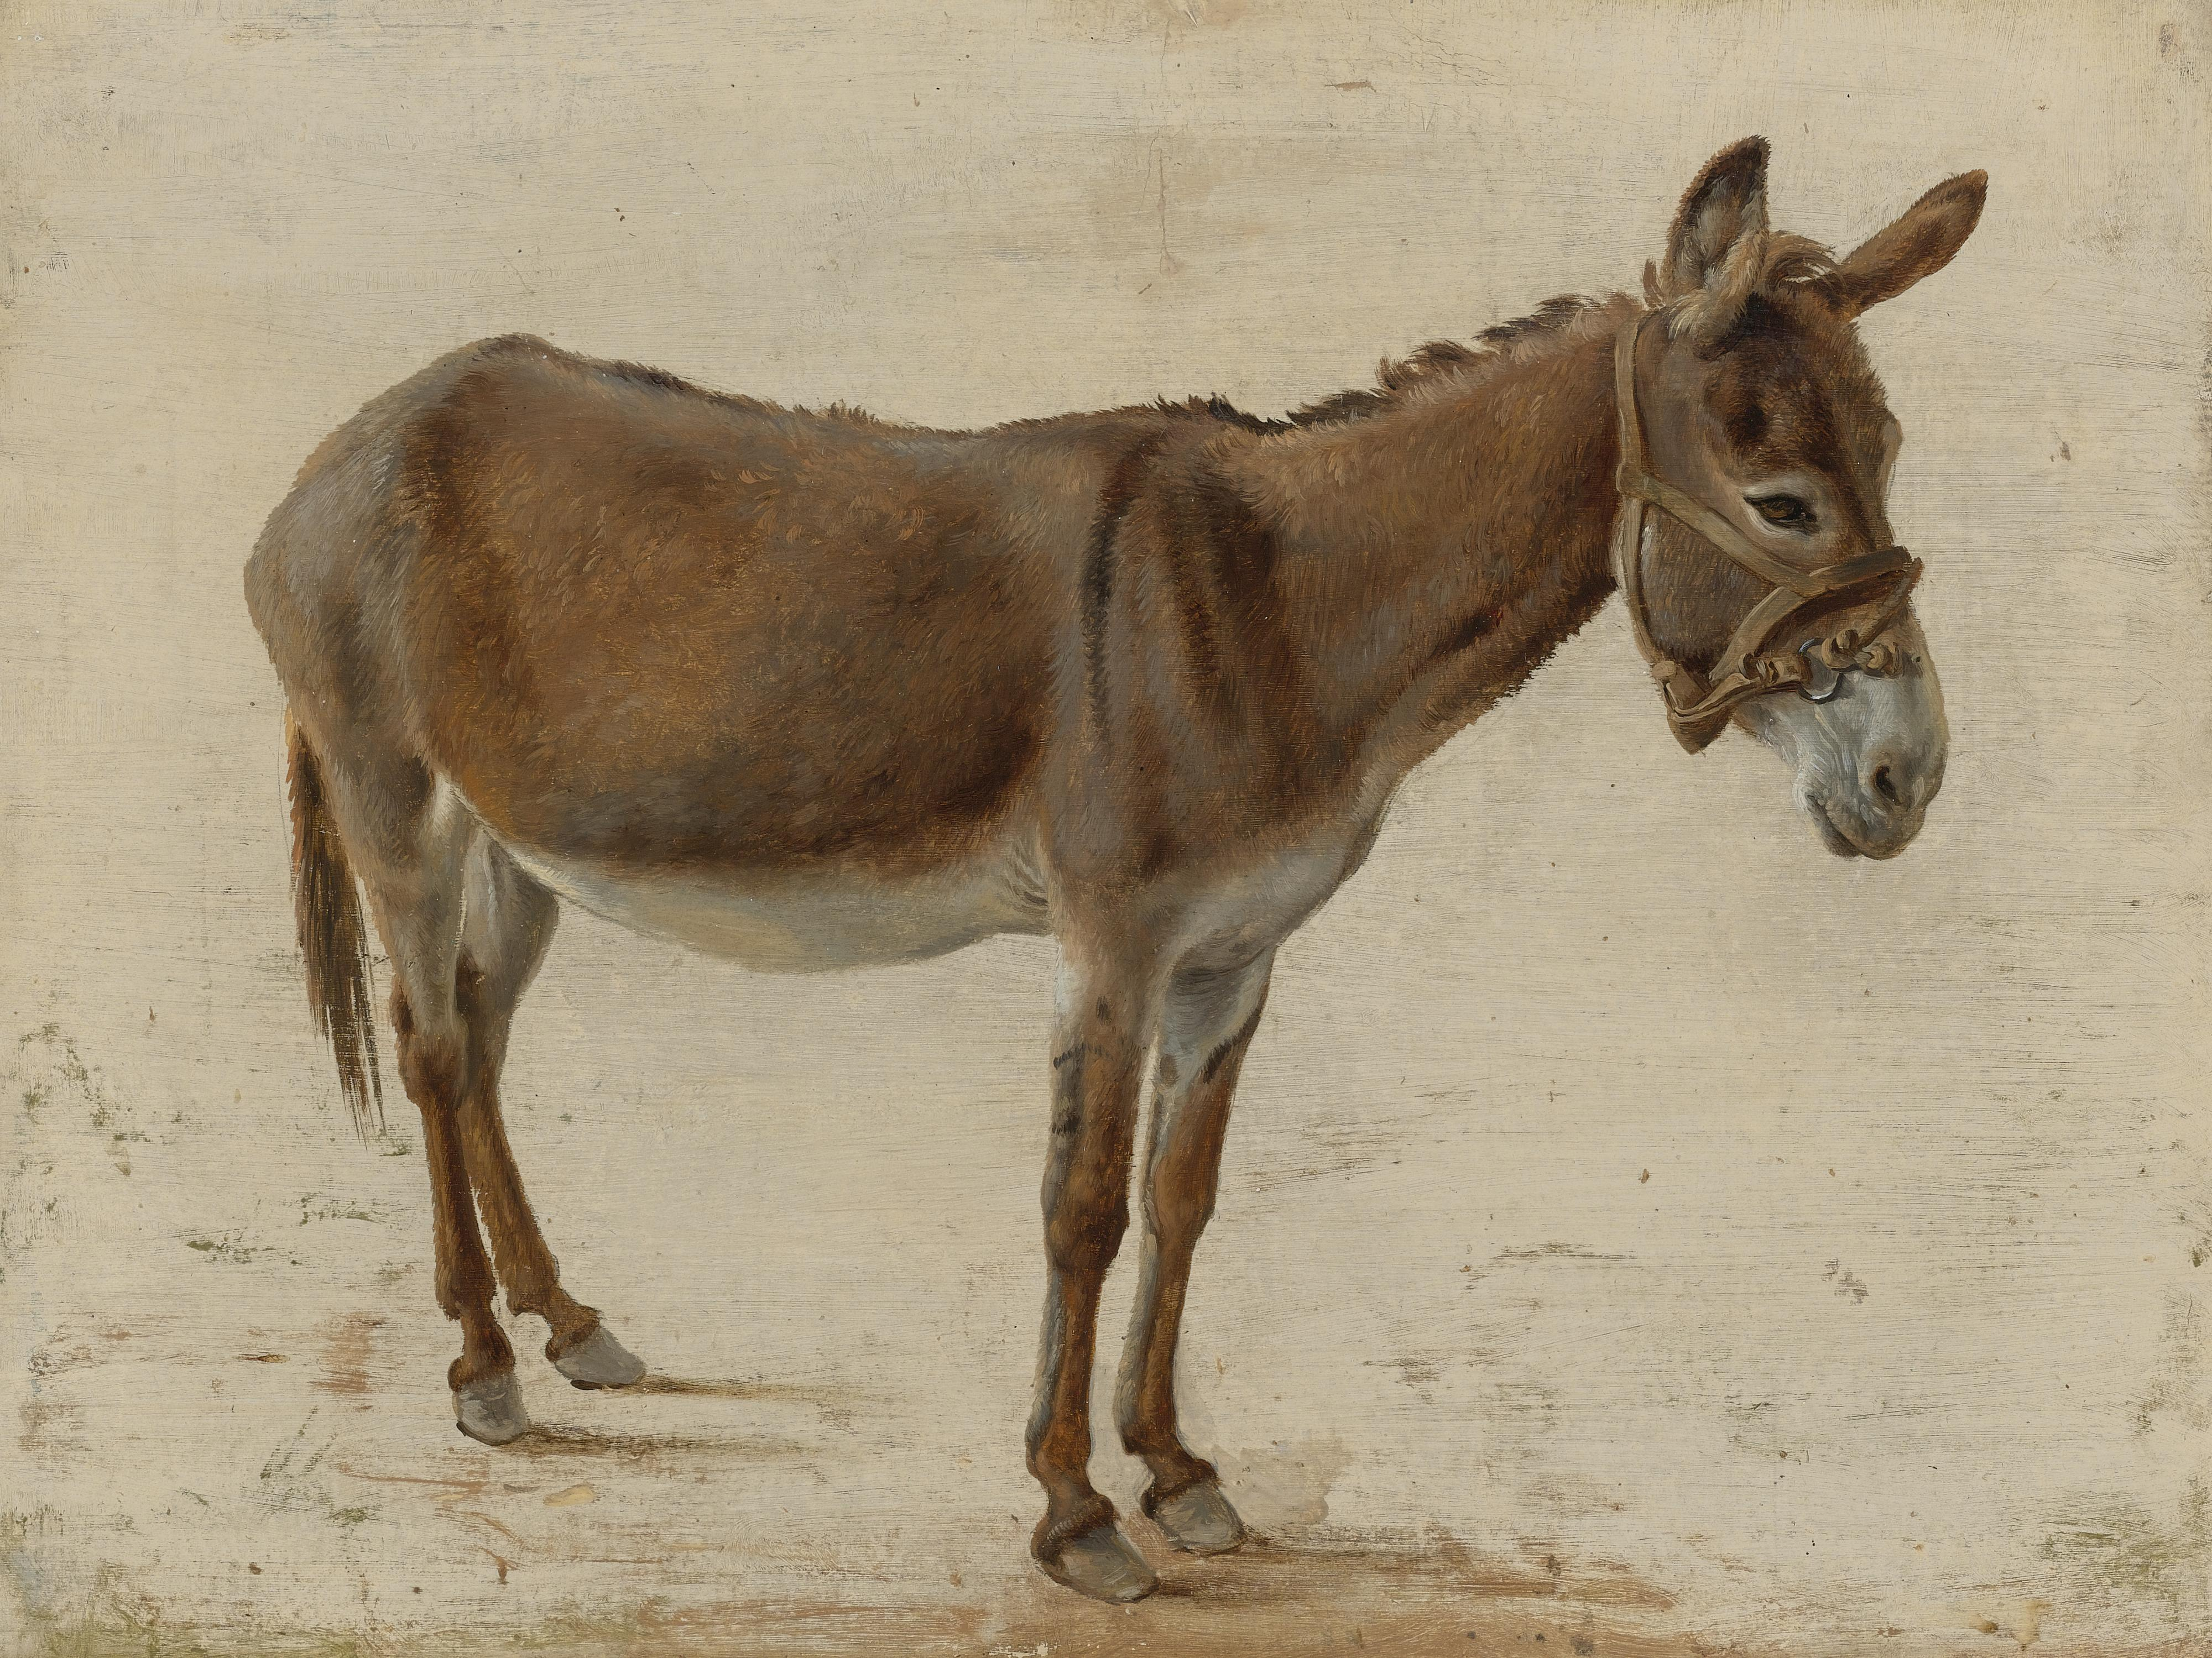 File:Jacques-Laurent Agasse - A donkey.jpg - Wikimedia Commons